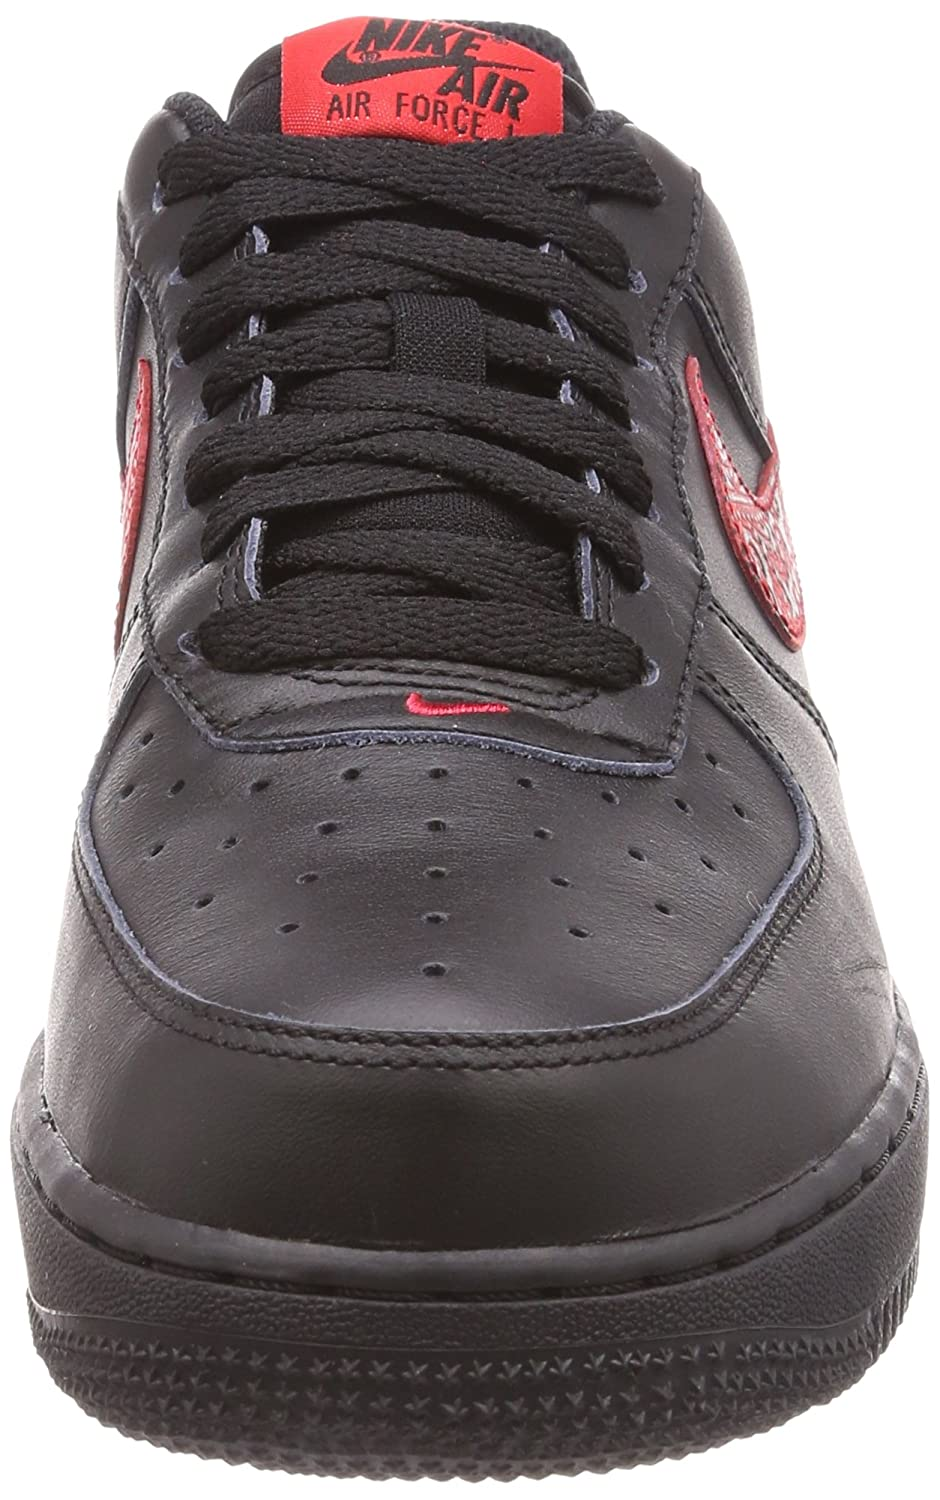 Nike Air Force 1 07 F rot Paisley Paisley Paisley Russian Floral schwarz University rot 3546a8